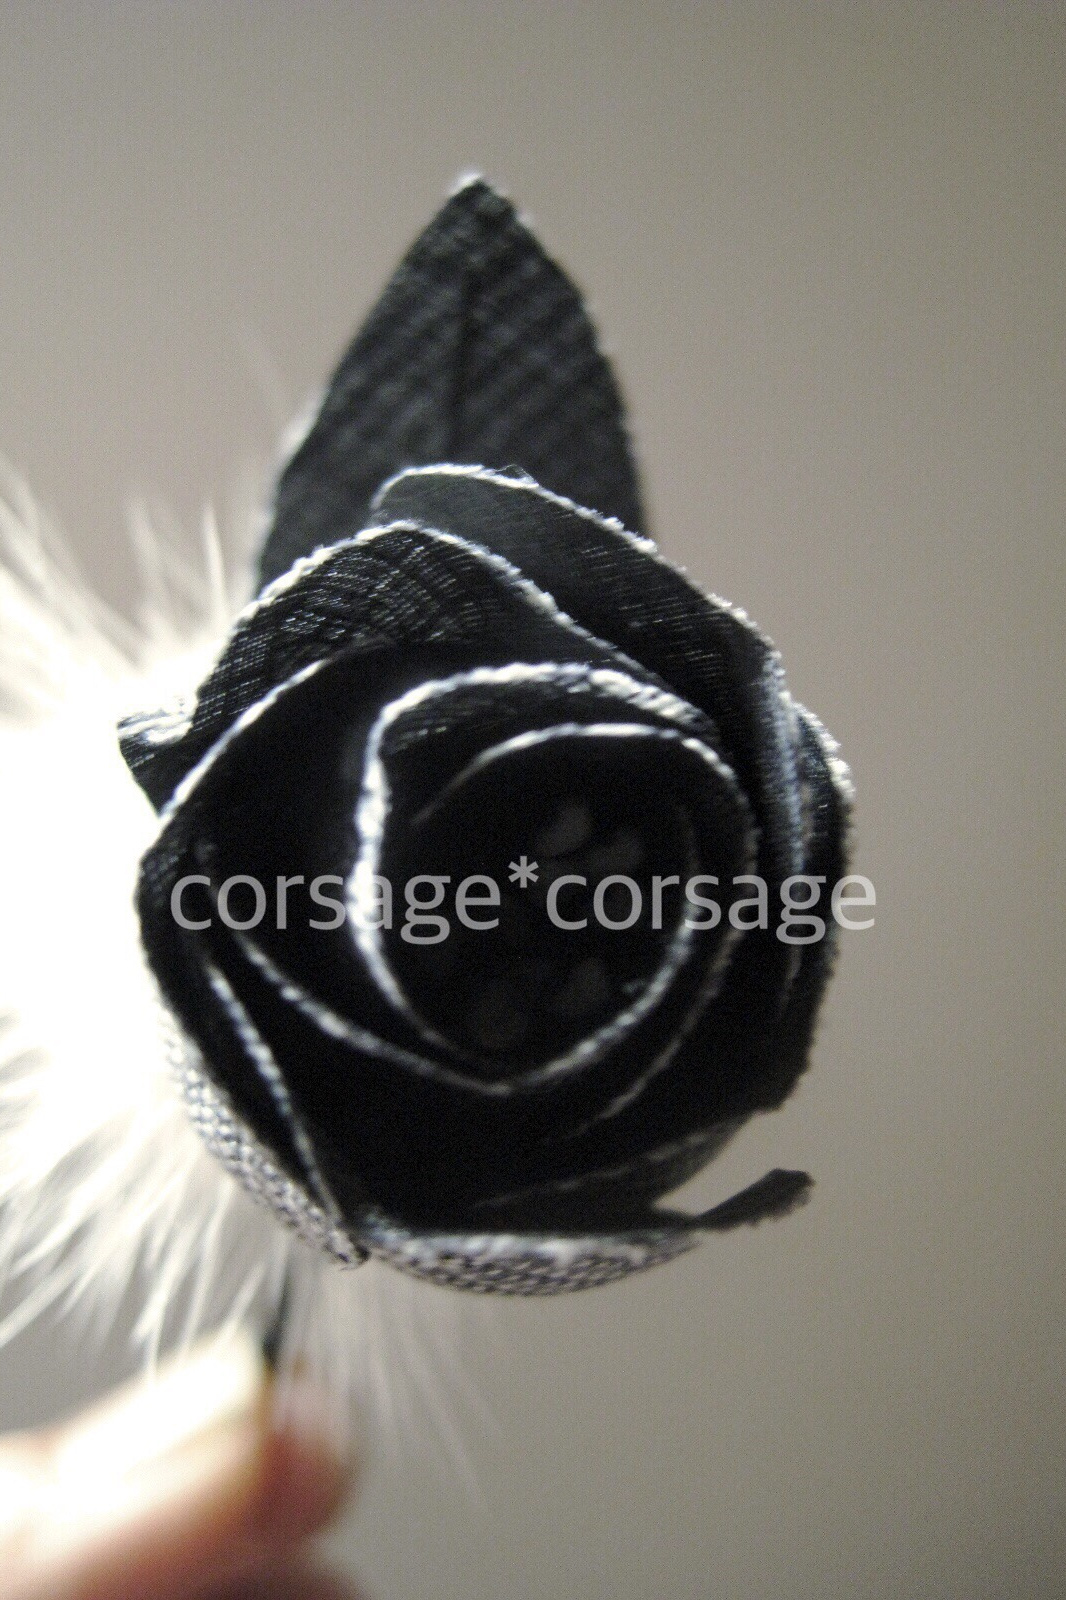 Italian Linen Rose Corsage/corsage*corsage